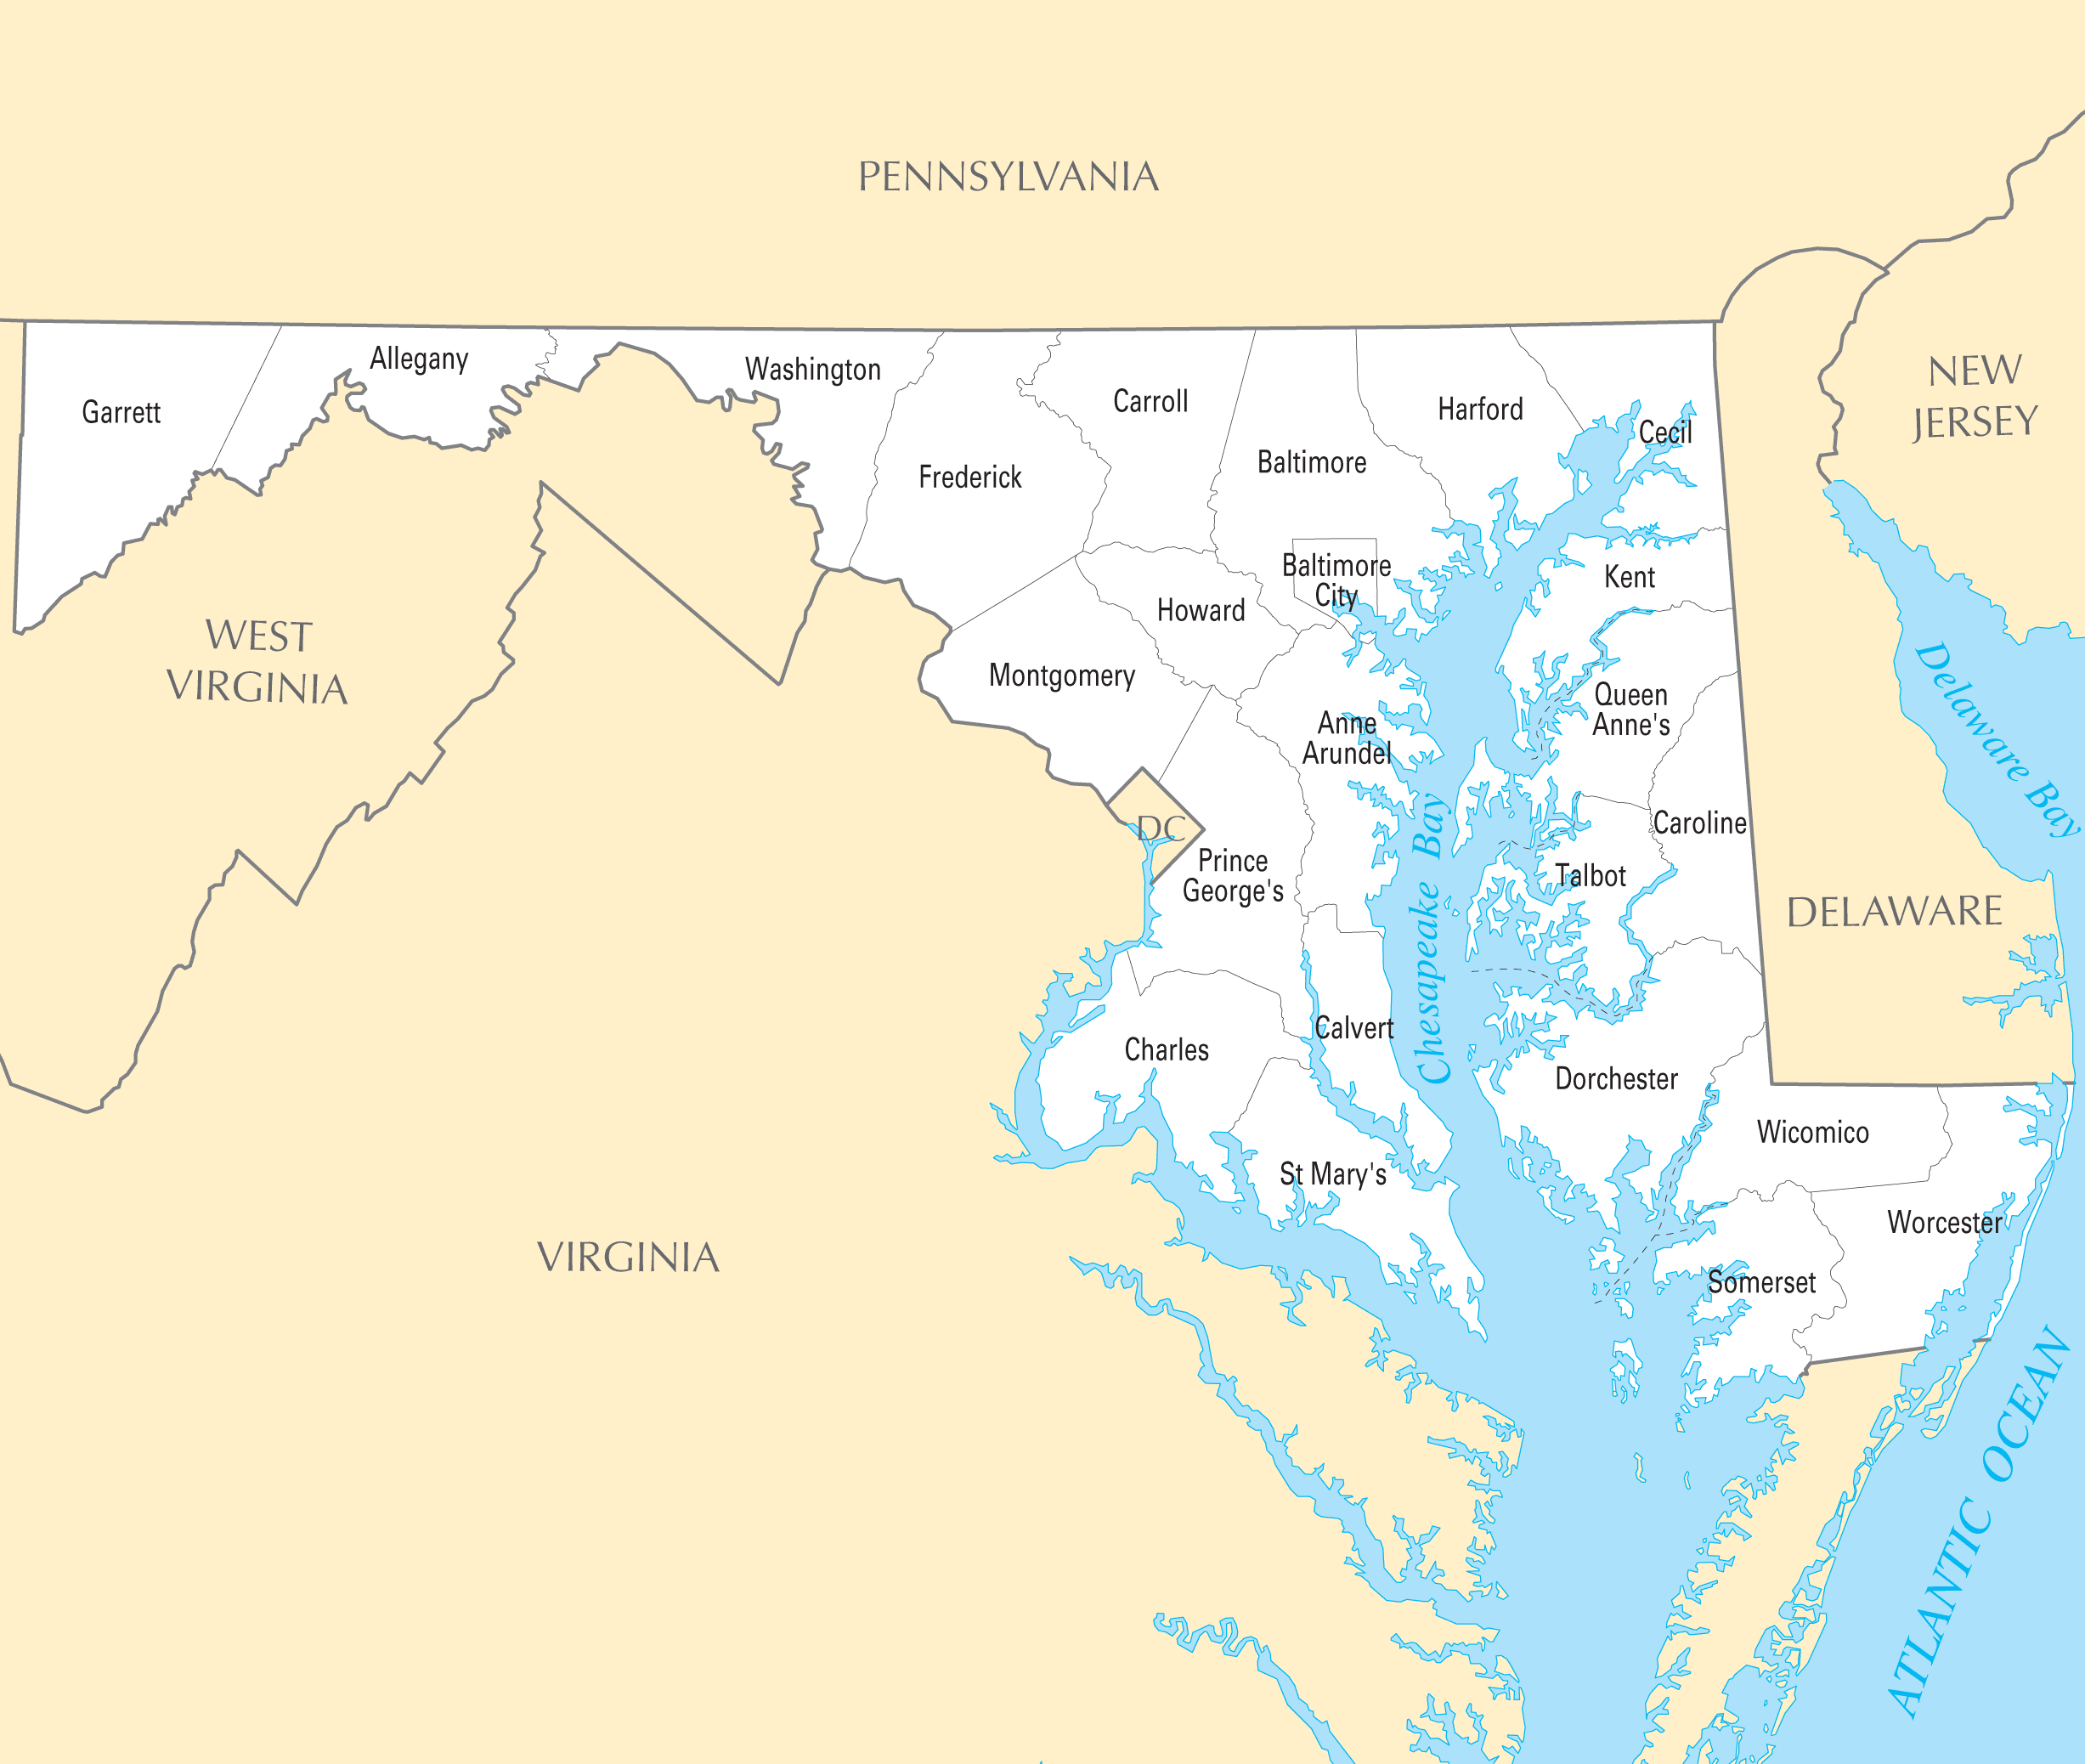 Maryland County Map Mapsofnet - Maryland county map